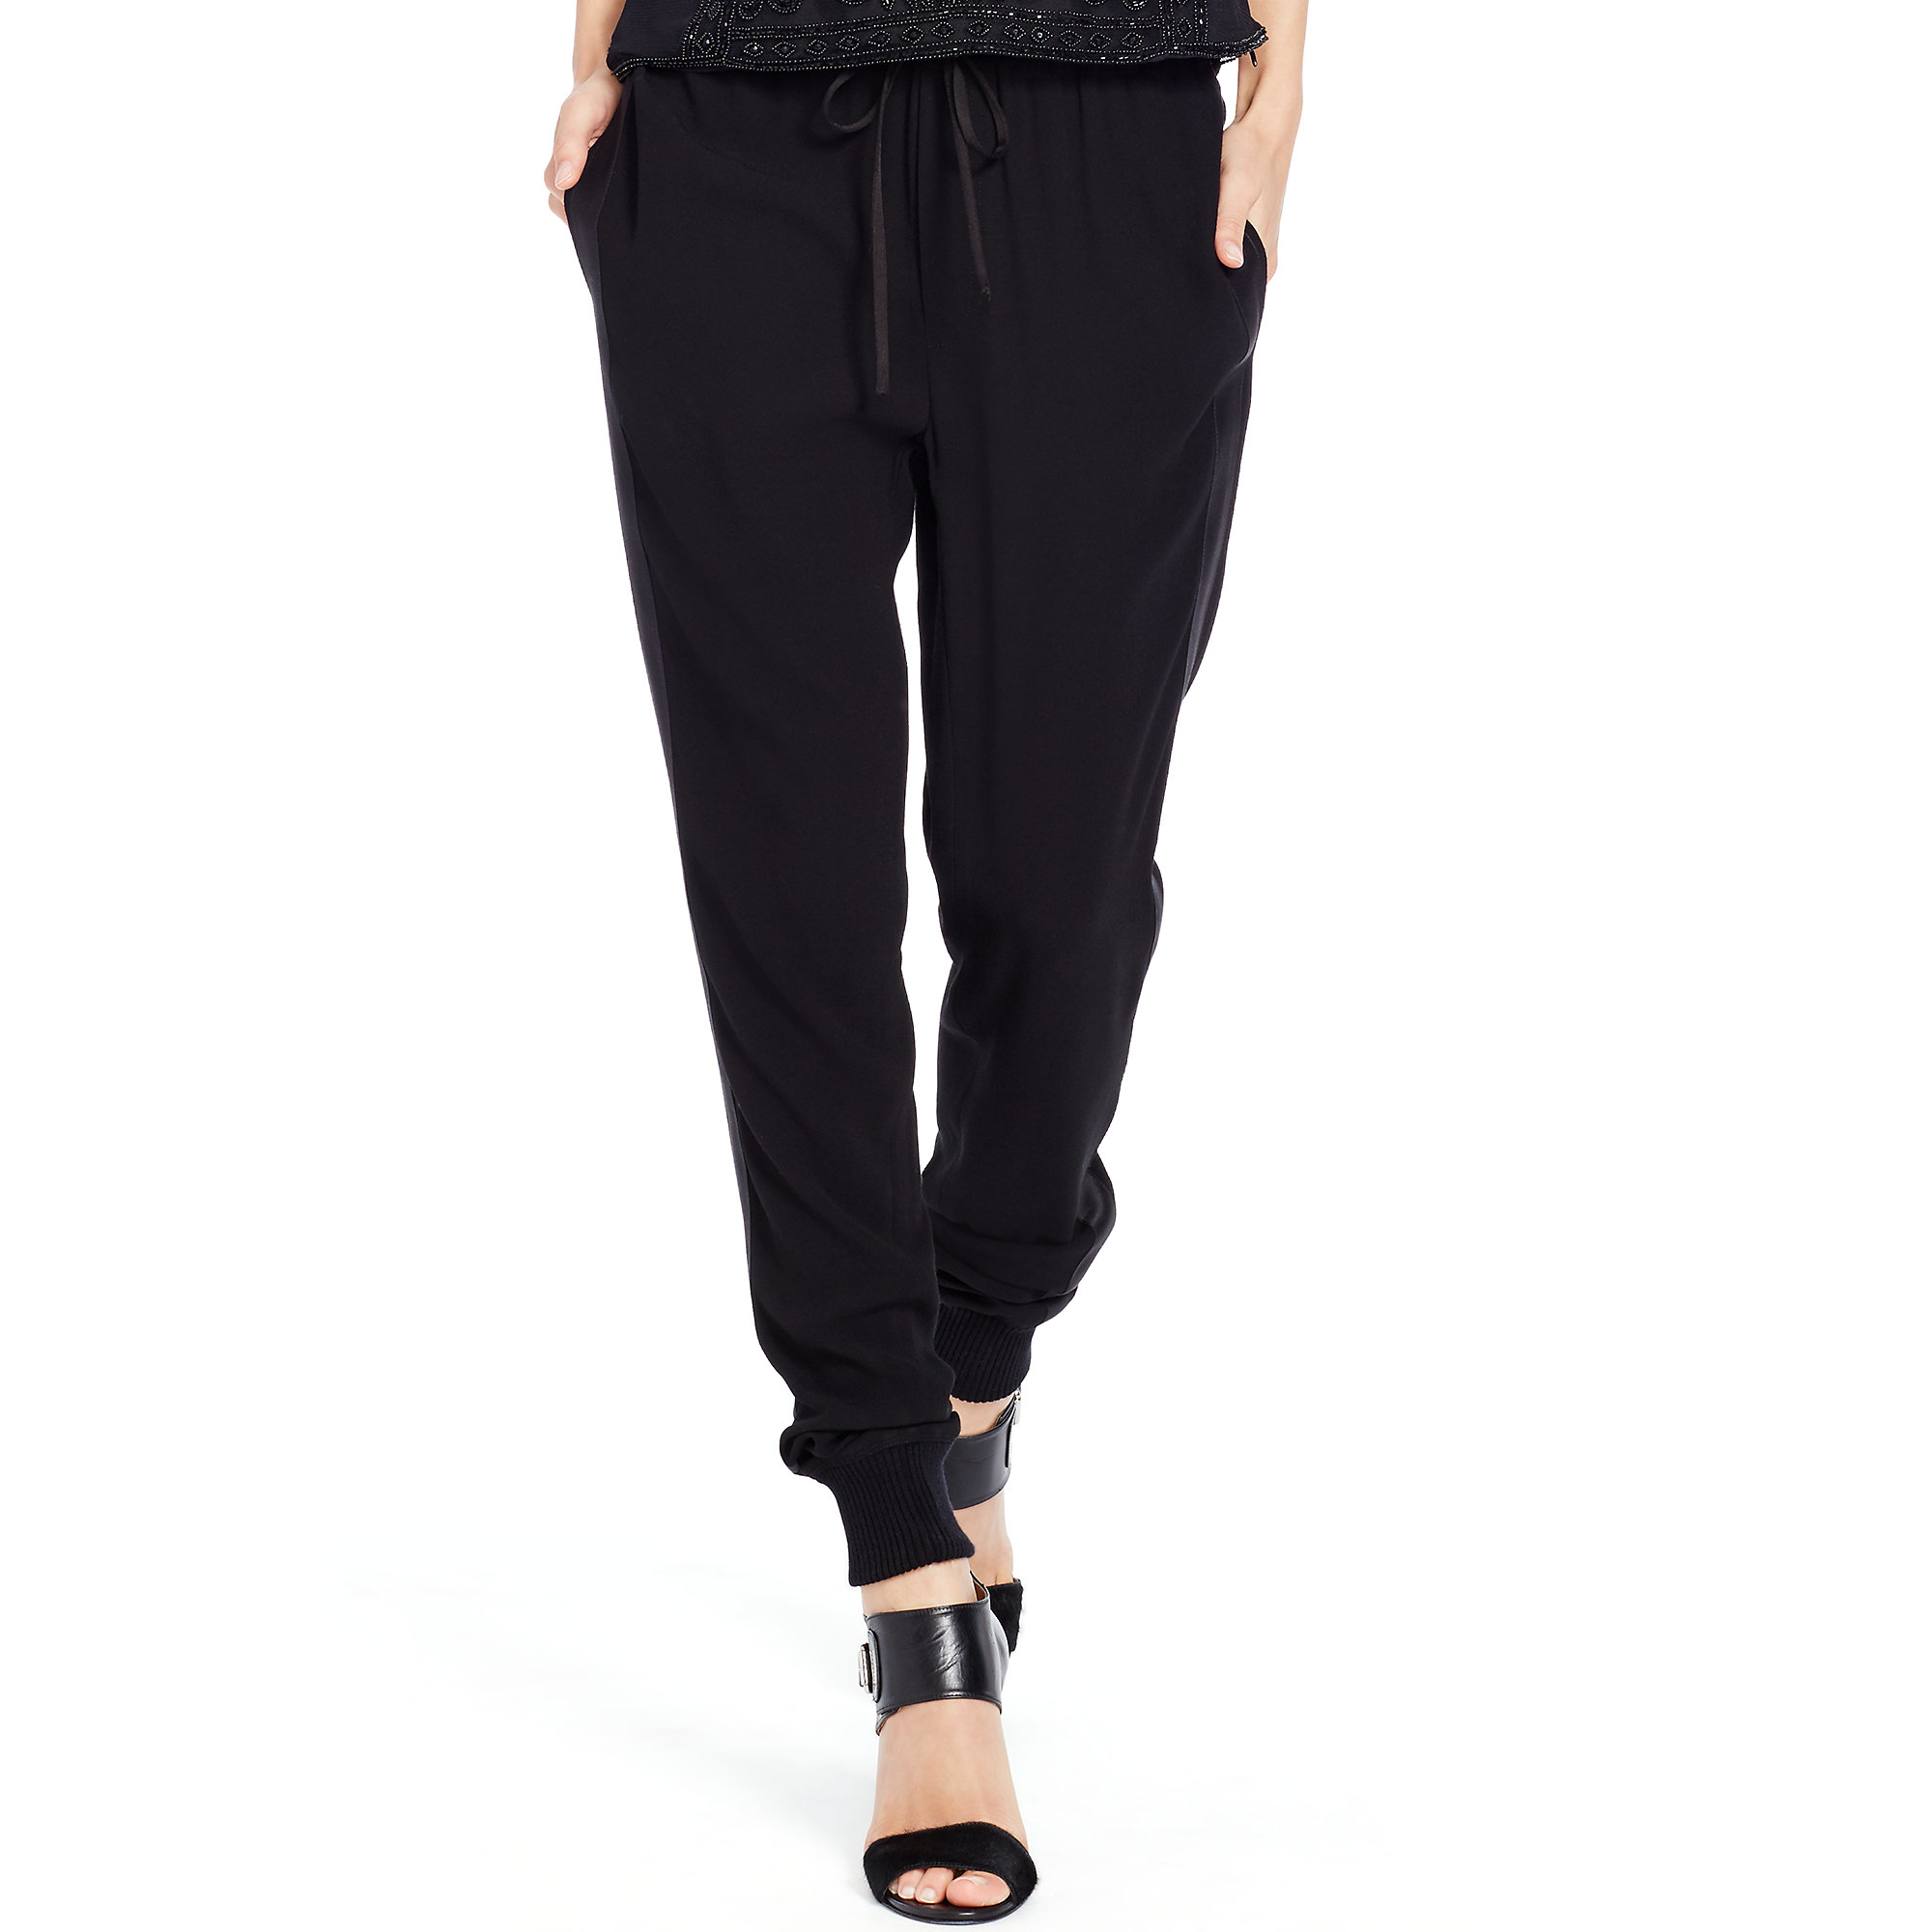 4bf0c5bee19 Lyst - Polo Ralph Lauren Tuxedo Jogger Pant in Black